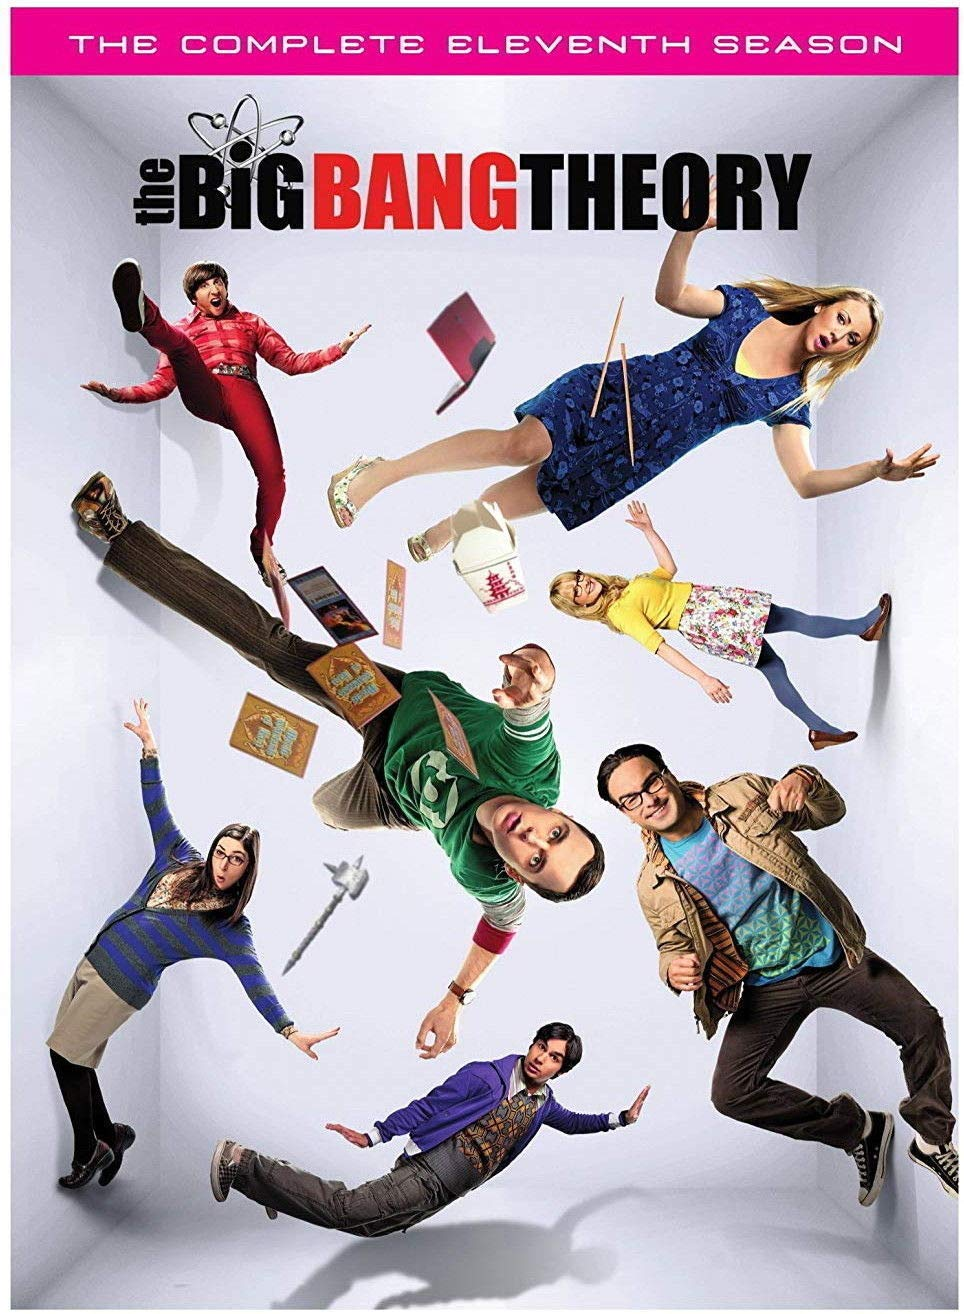 The Big Bang Theory: The Complete Eleventh Season 11(DVD, 2-Disc Set) New Not attached